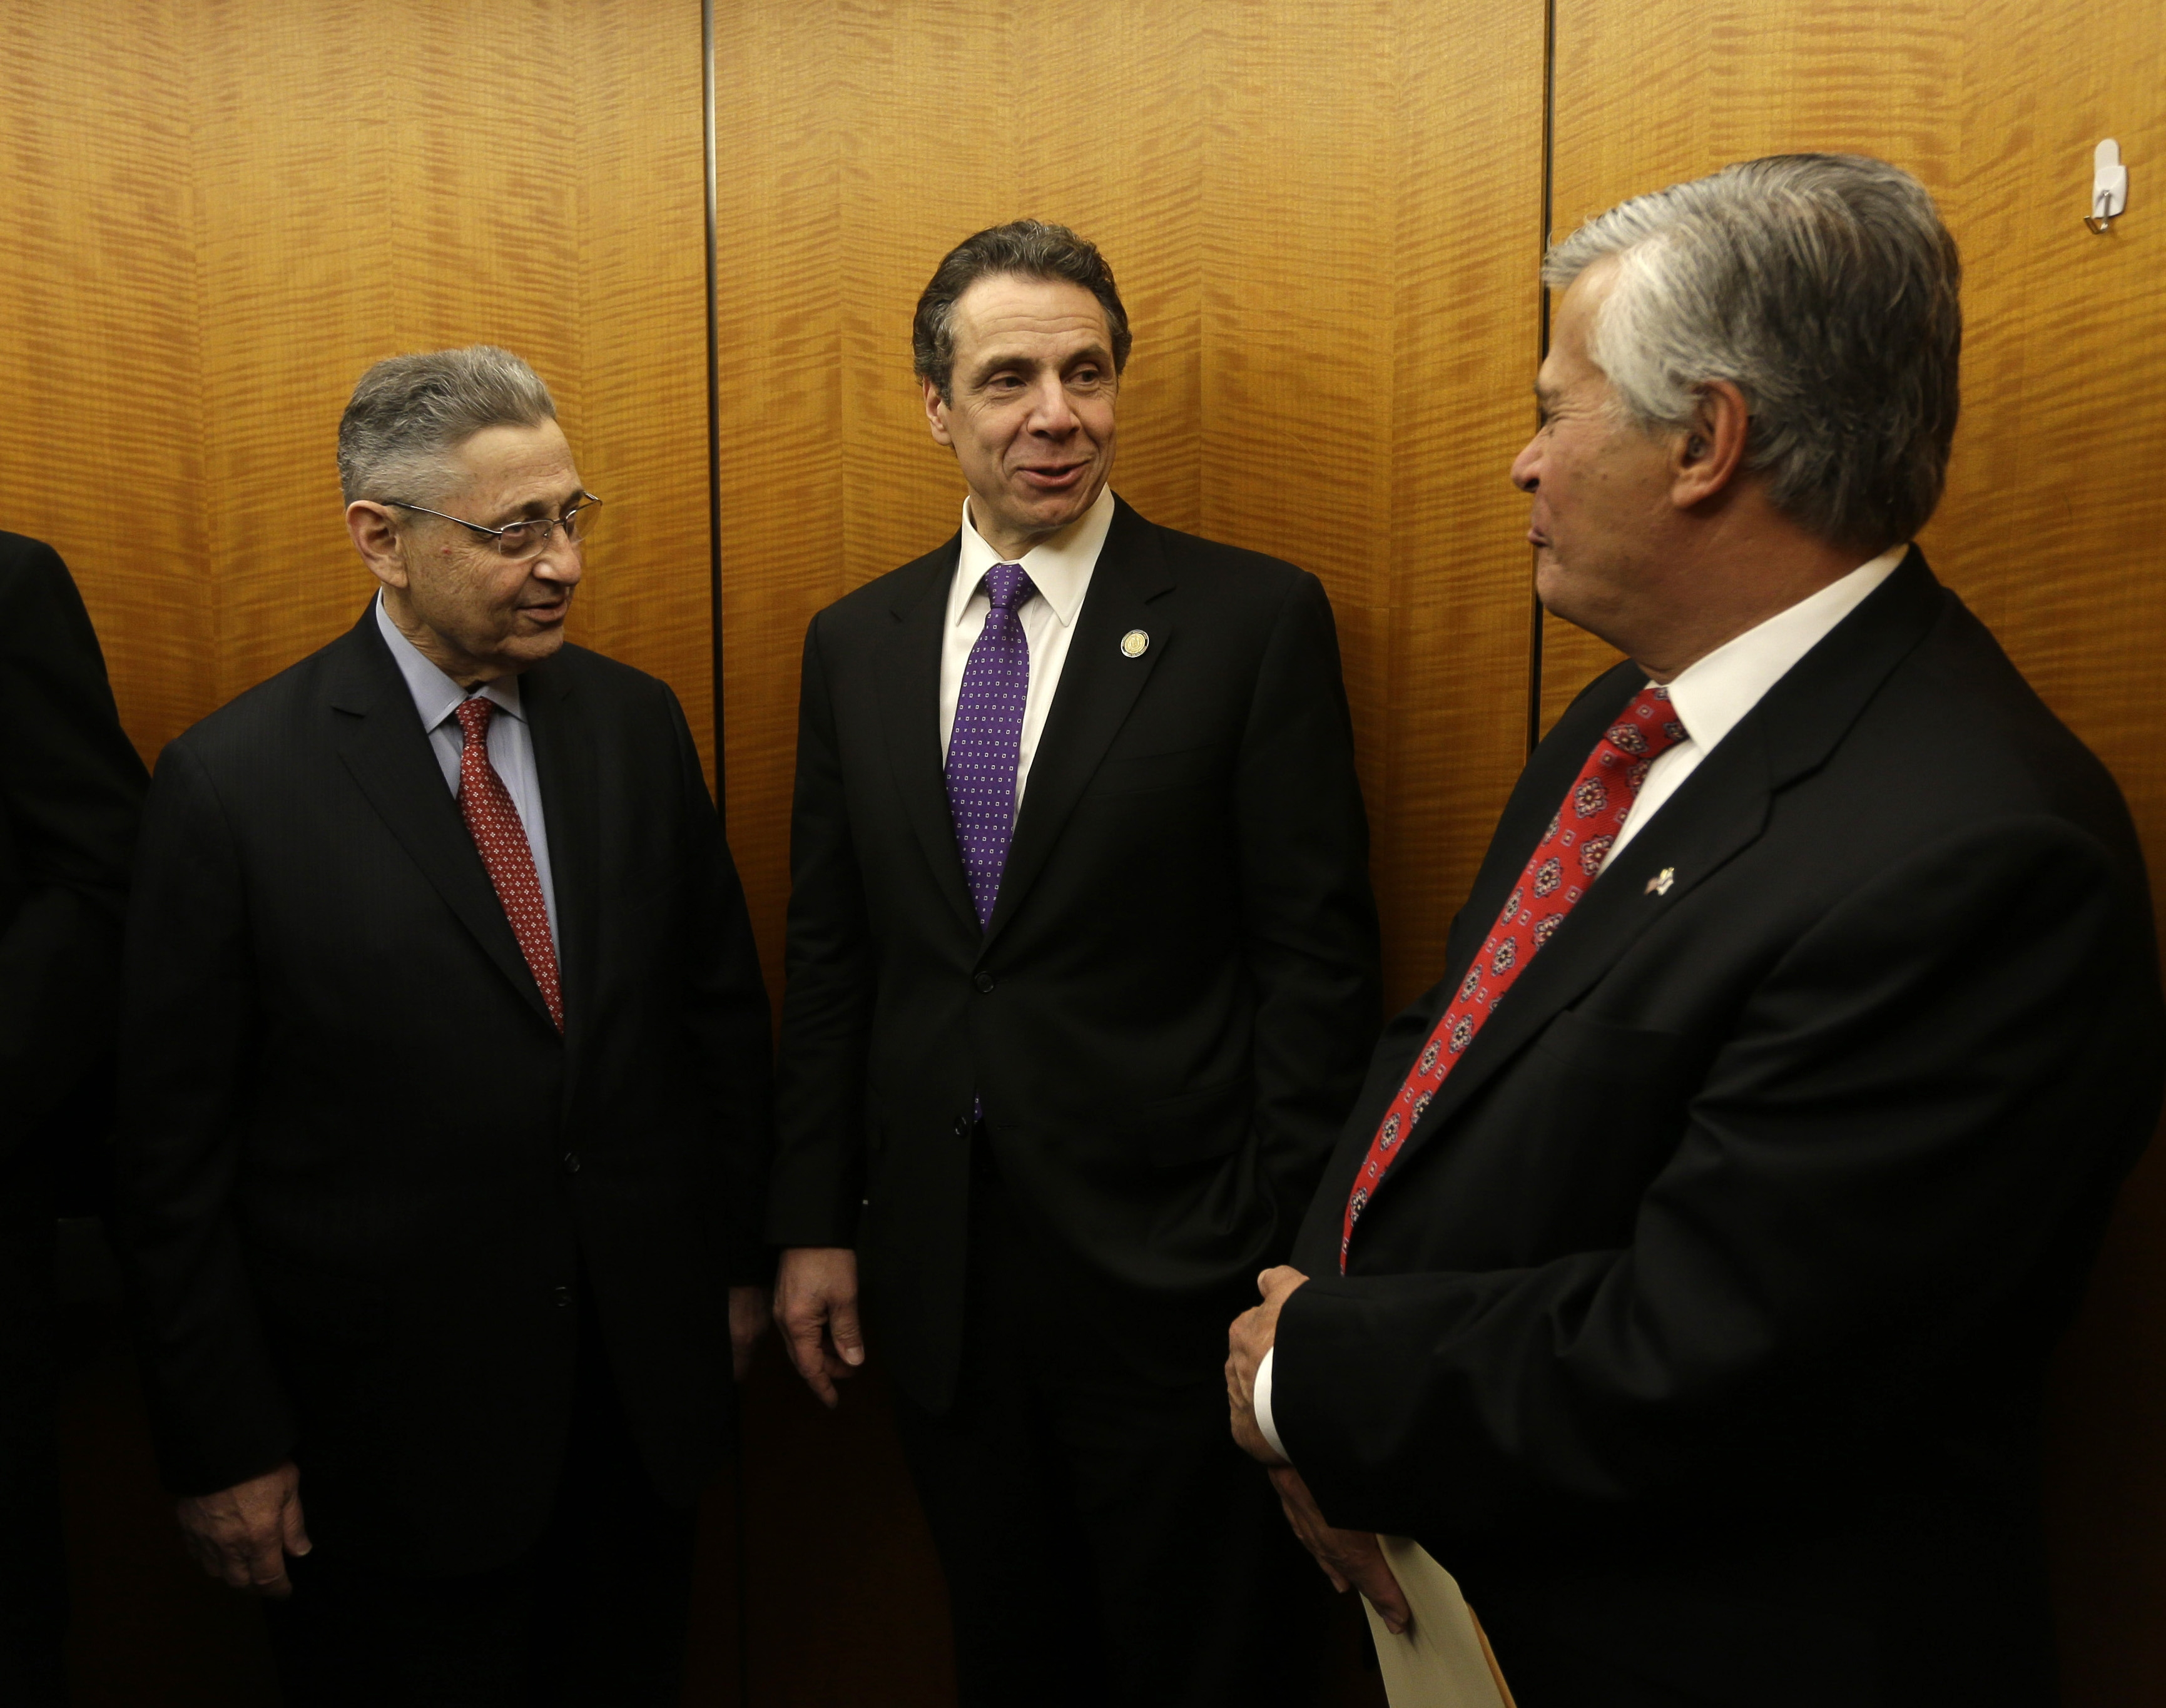 From left, Assembly Speaker Sheldon Silver, D-Manhattan; Gov. Andrew M. Cuomo; and State Senate co-leader Dean Skelos, R-Rockville Centre, are three of the four people behind the state budget deal reached Saturday. The fourth, State Sen. Jeff Klein, a Bronx Democrat, is not shown.